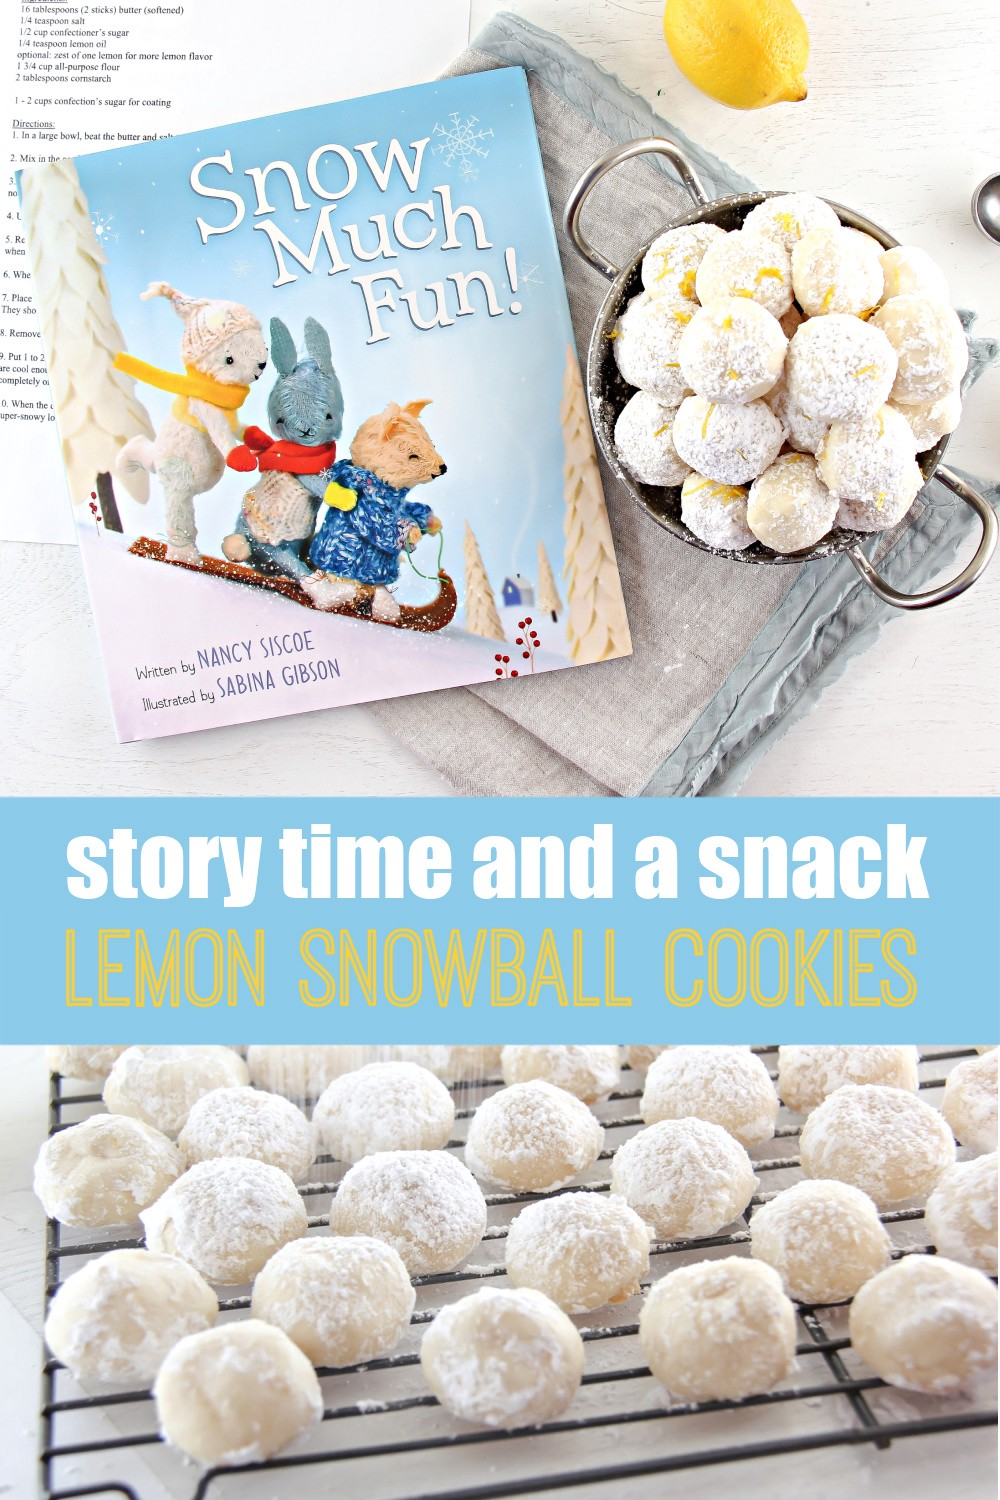 story time and a snack — lemon snowball cookies